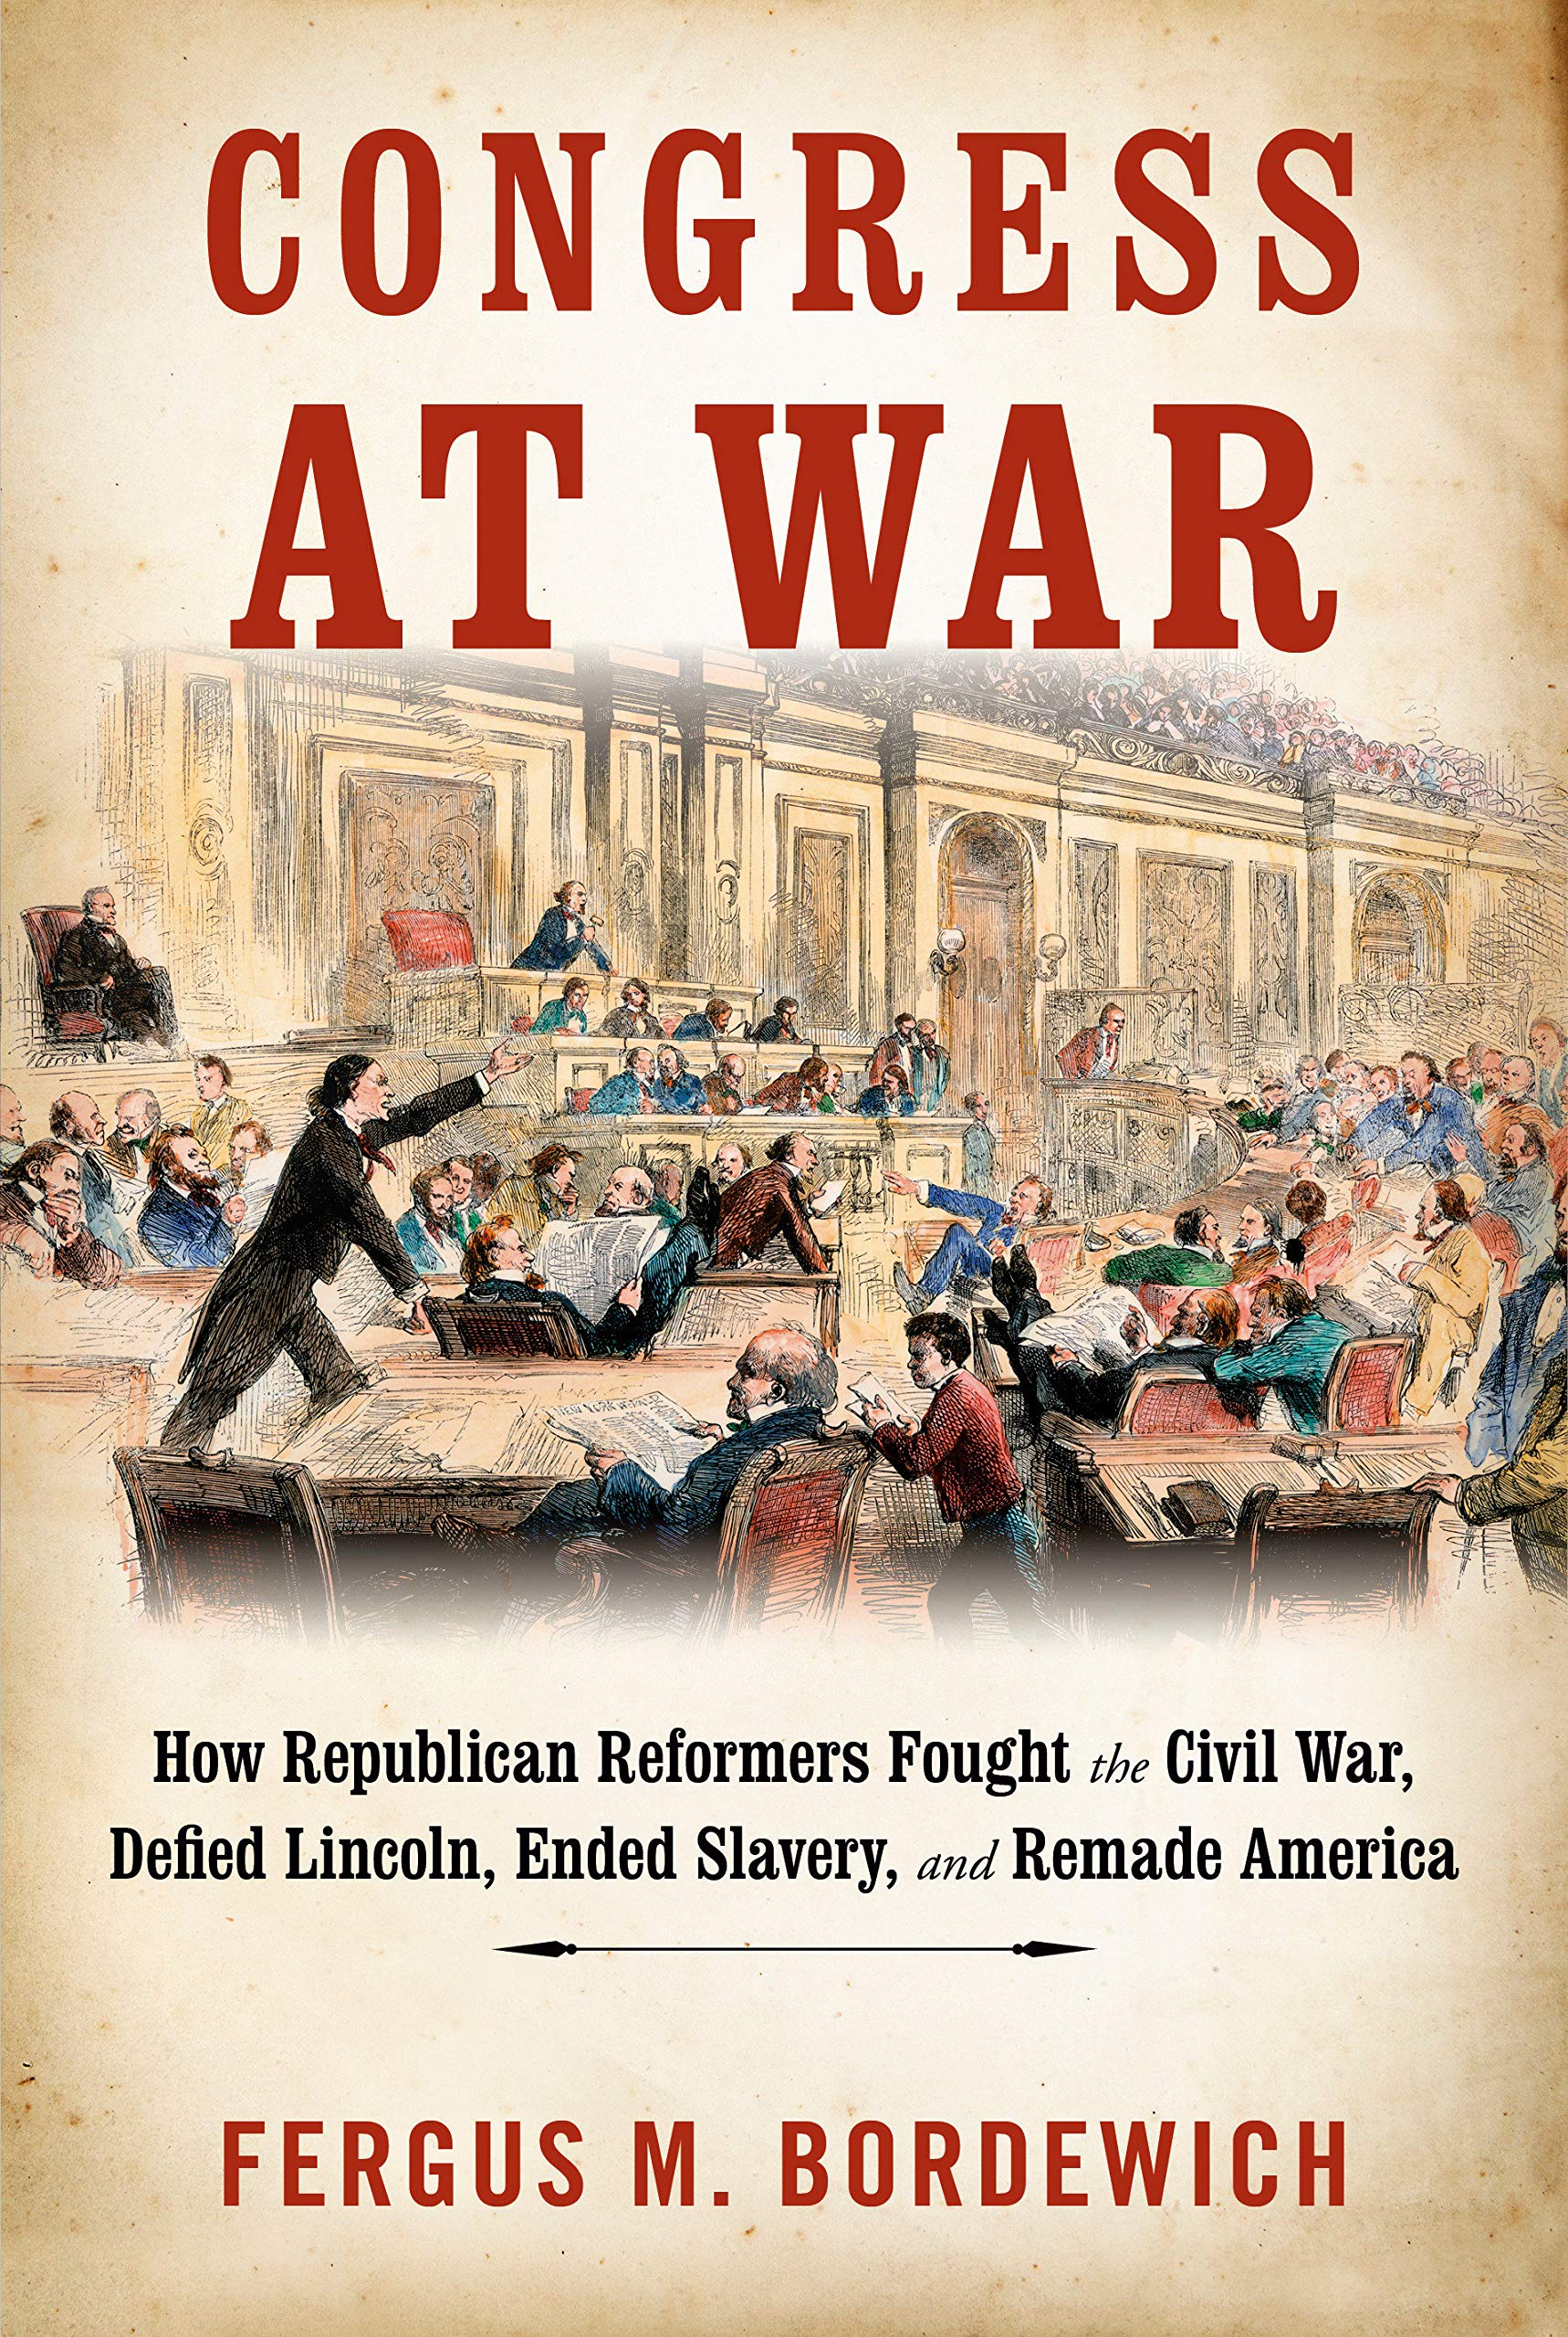 Congress At War How Republican Reformers Fought The Civil War Defied Lincoln Ended Slavery And Remade America Bordewich Fergus M 9780451494443 Amazon Com Books